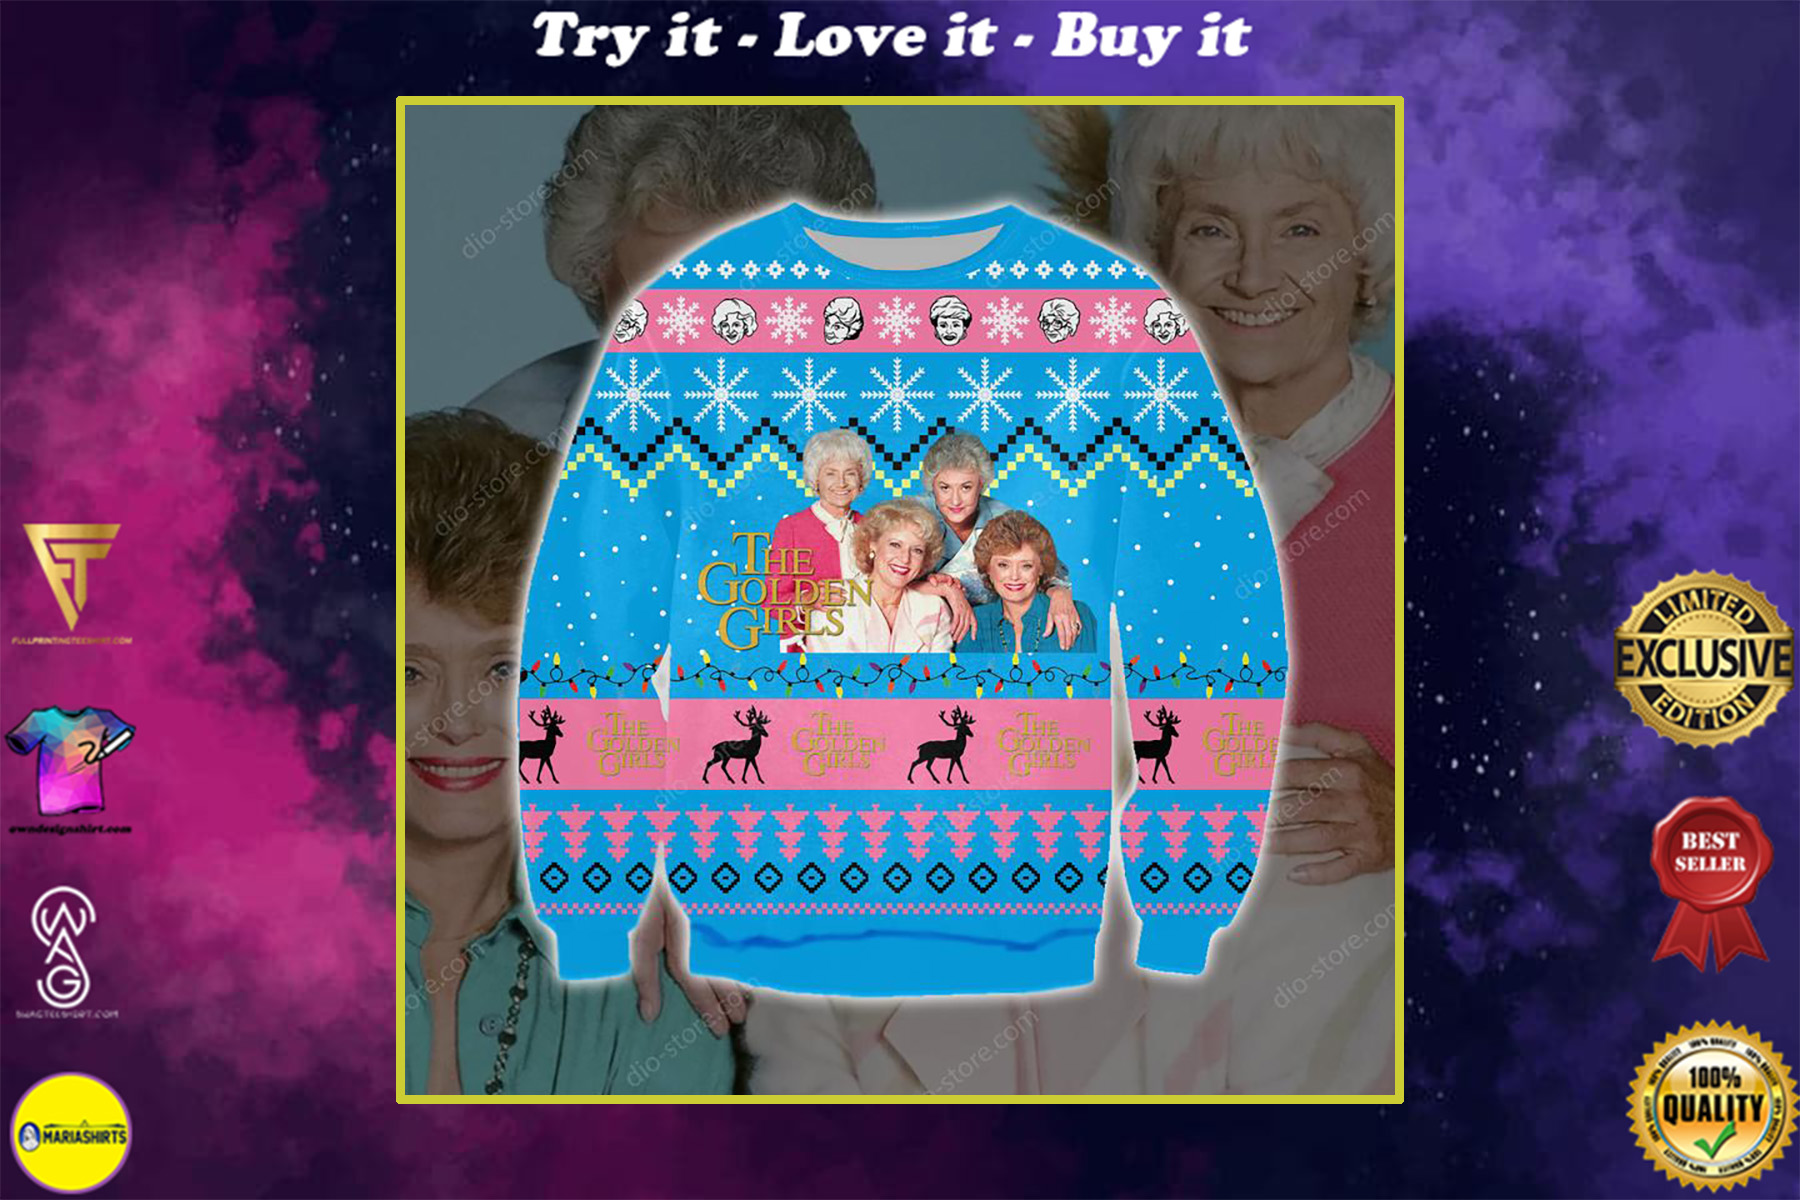 the golden girls full printing ugly christmas sweater